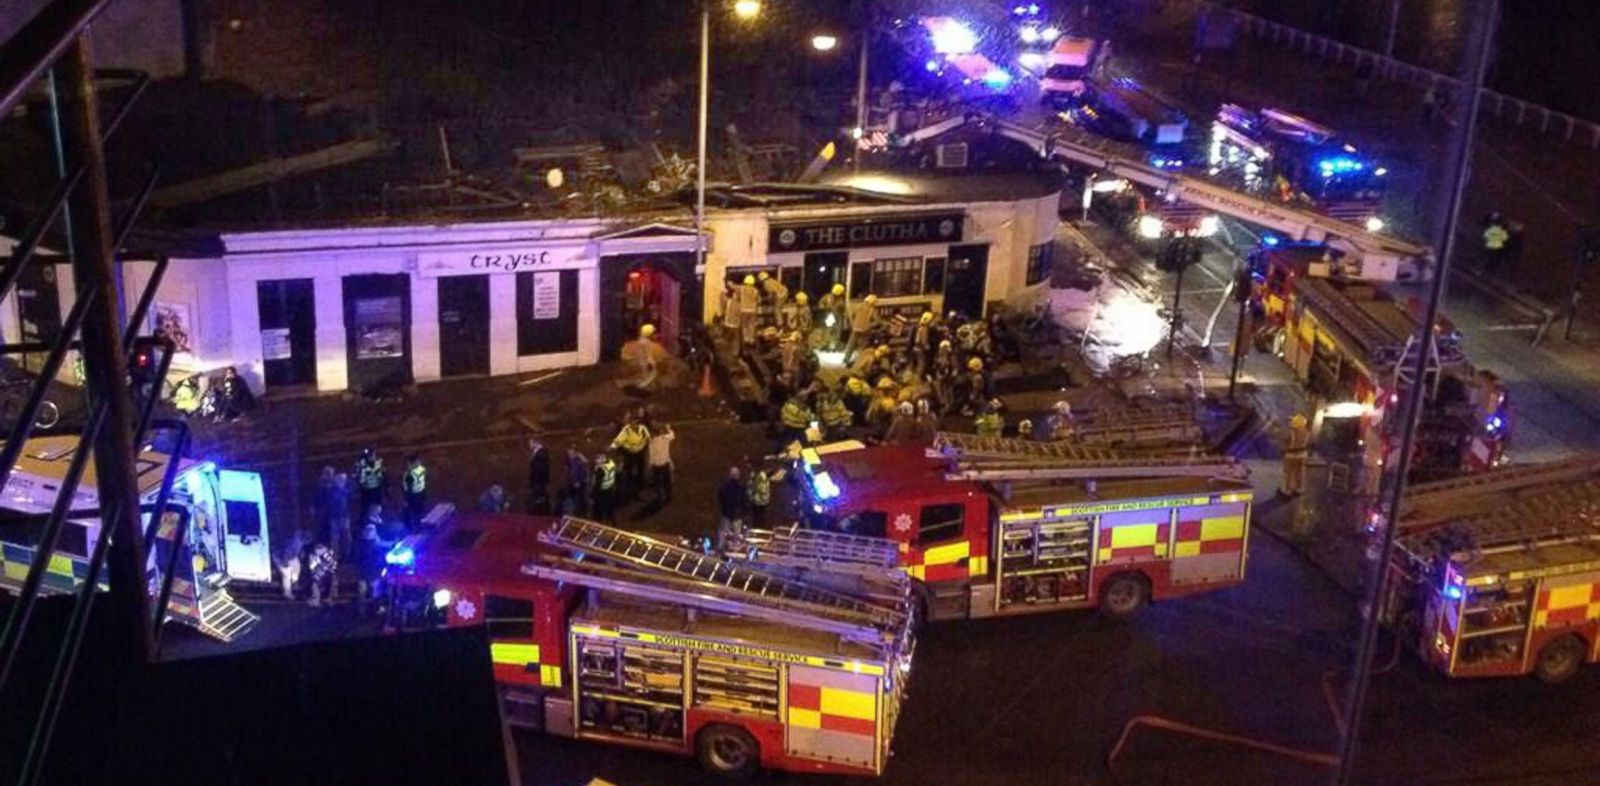 PHOTO: Picture of the helicopter crash at the Clutha Bar in Glasgow, Scotland, on Nov. 29, 2013, taken with permission from Jan Hollands Twitter feed, @Janney_h.